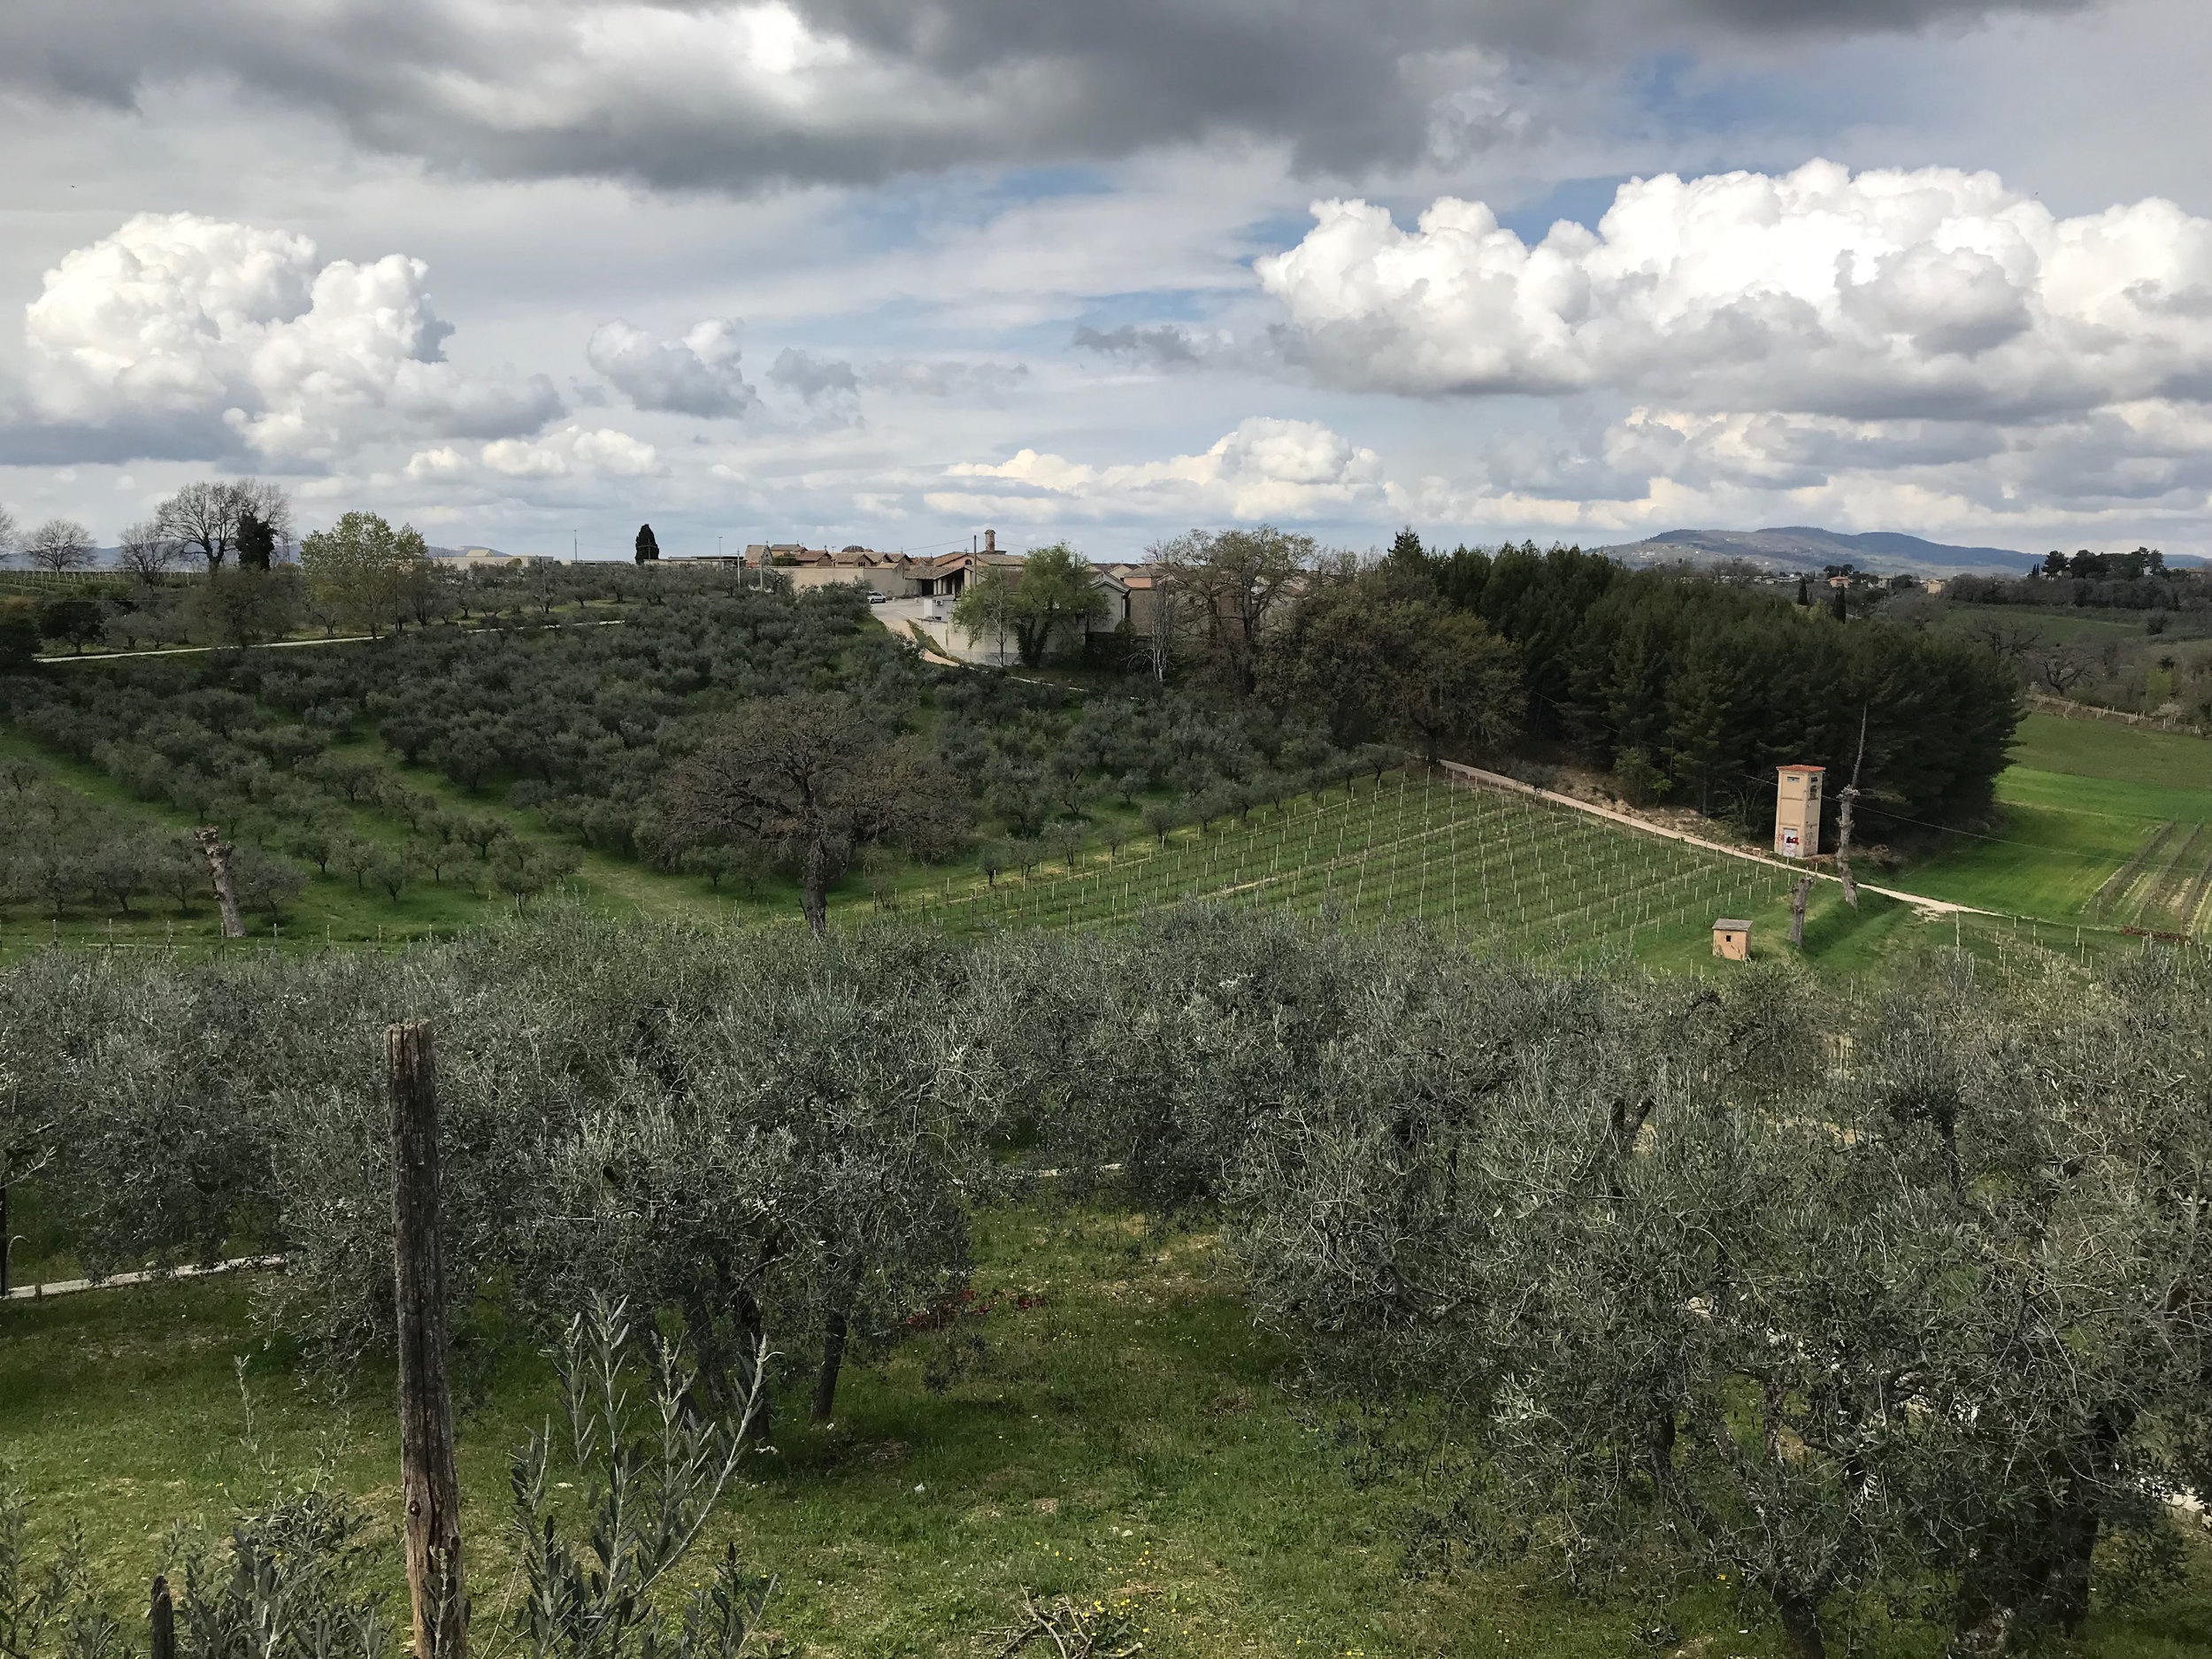 The view from Paulo Bea. Olive trees and vineyards are a typical juxtaposition in Montefalco.